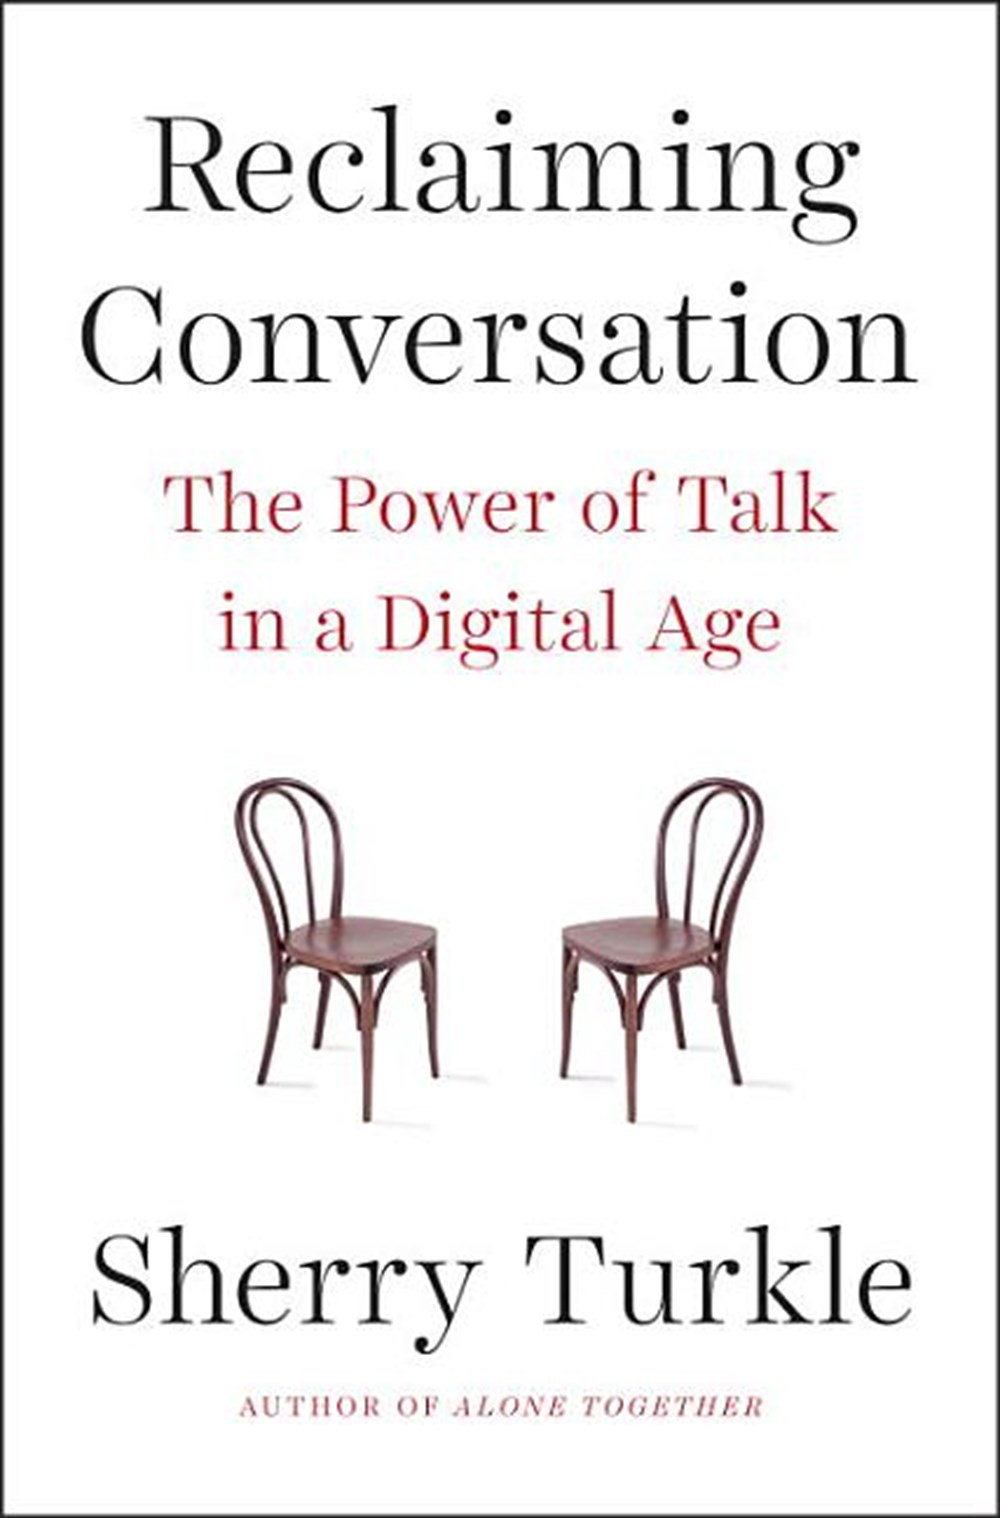 Reclaiming Conversation The Power of Talk in a Digital Age